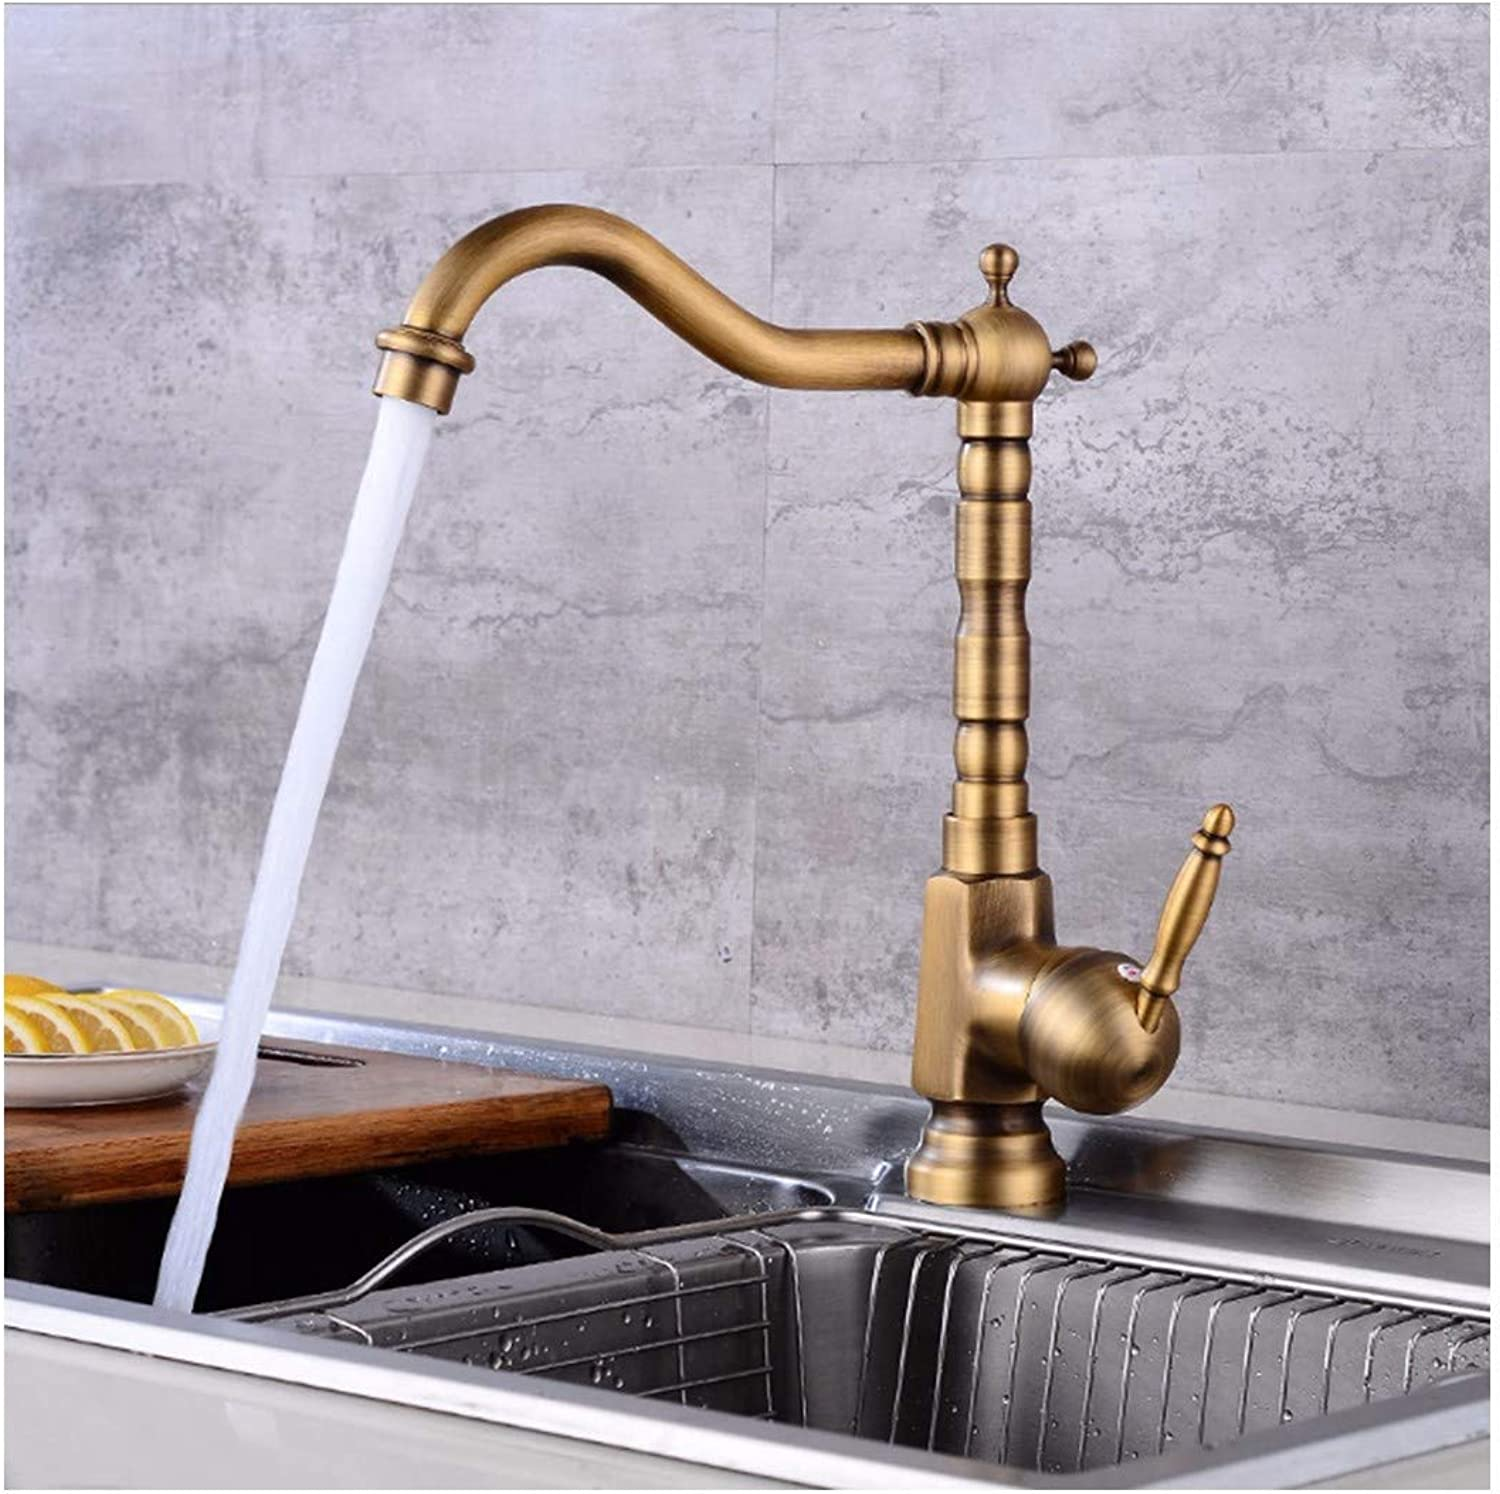 PatTheTap Retro Bronze Faucet Vintage Brushed All Copper Tap Right Angle 360 Degree redation Round Base 1-Hole 1 Handle Water Tap Hot and Cold Mixing Water-Tap with Hoses for Kitchen